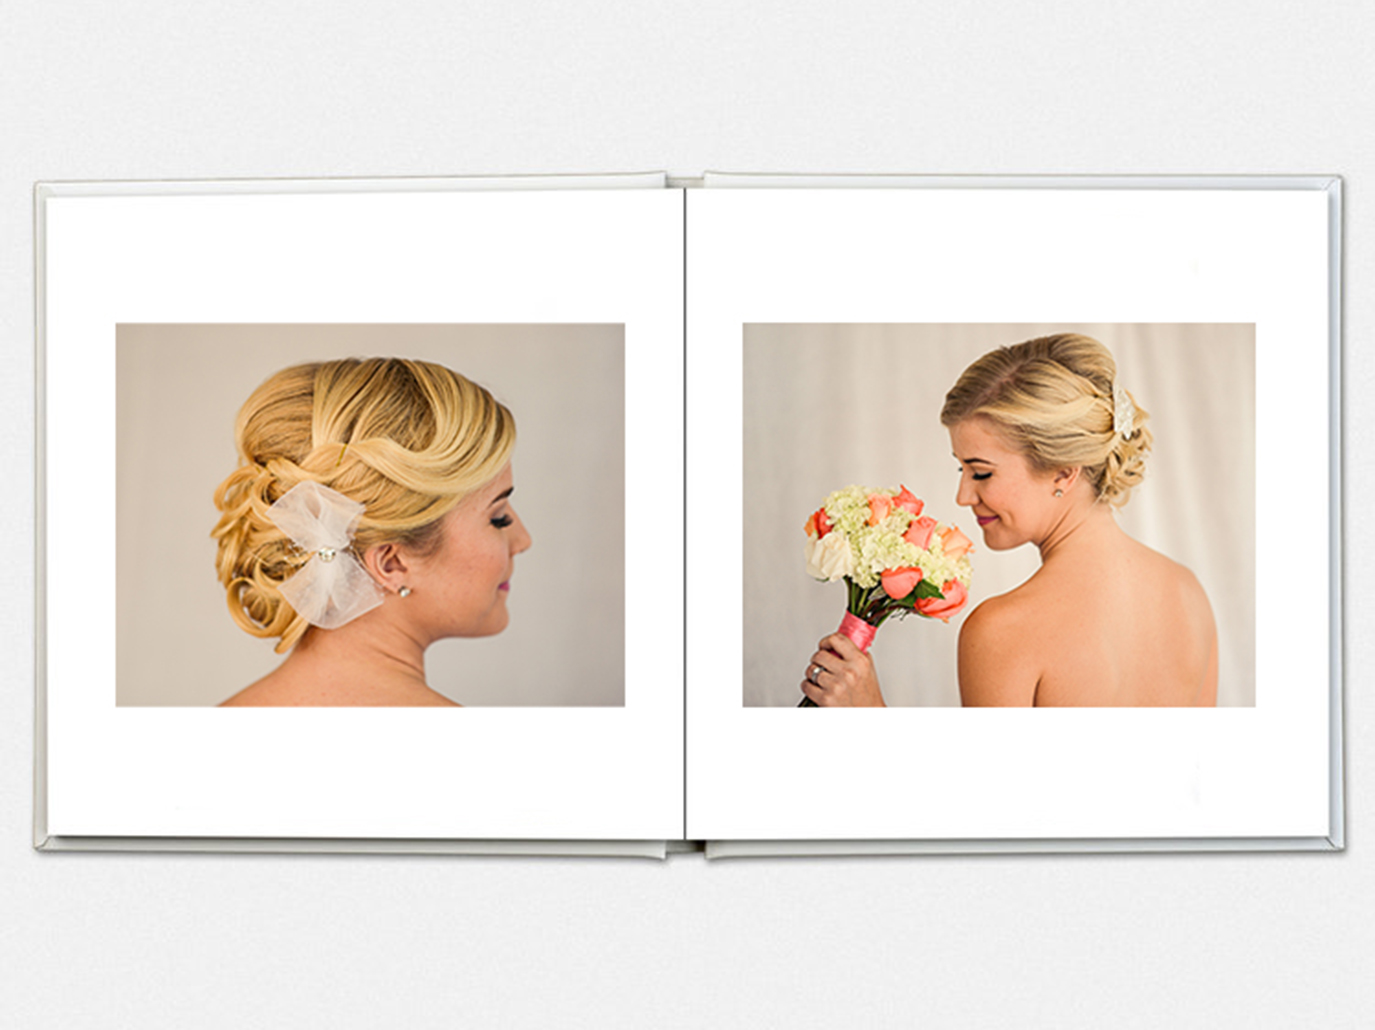 $1100 - 7x10 20 Spreads/40 PagesThe perfect keepsake from your wedding day that you'll be proud to display.